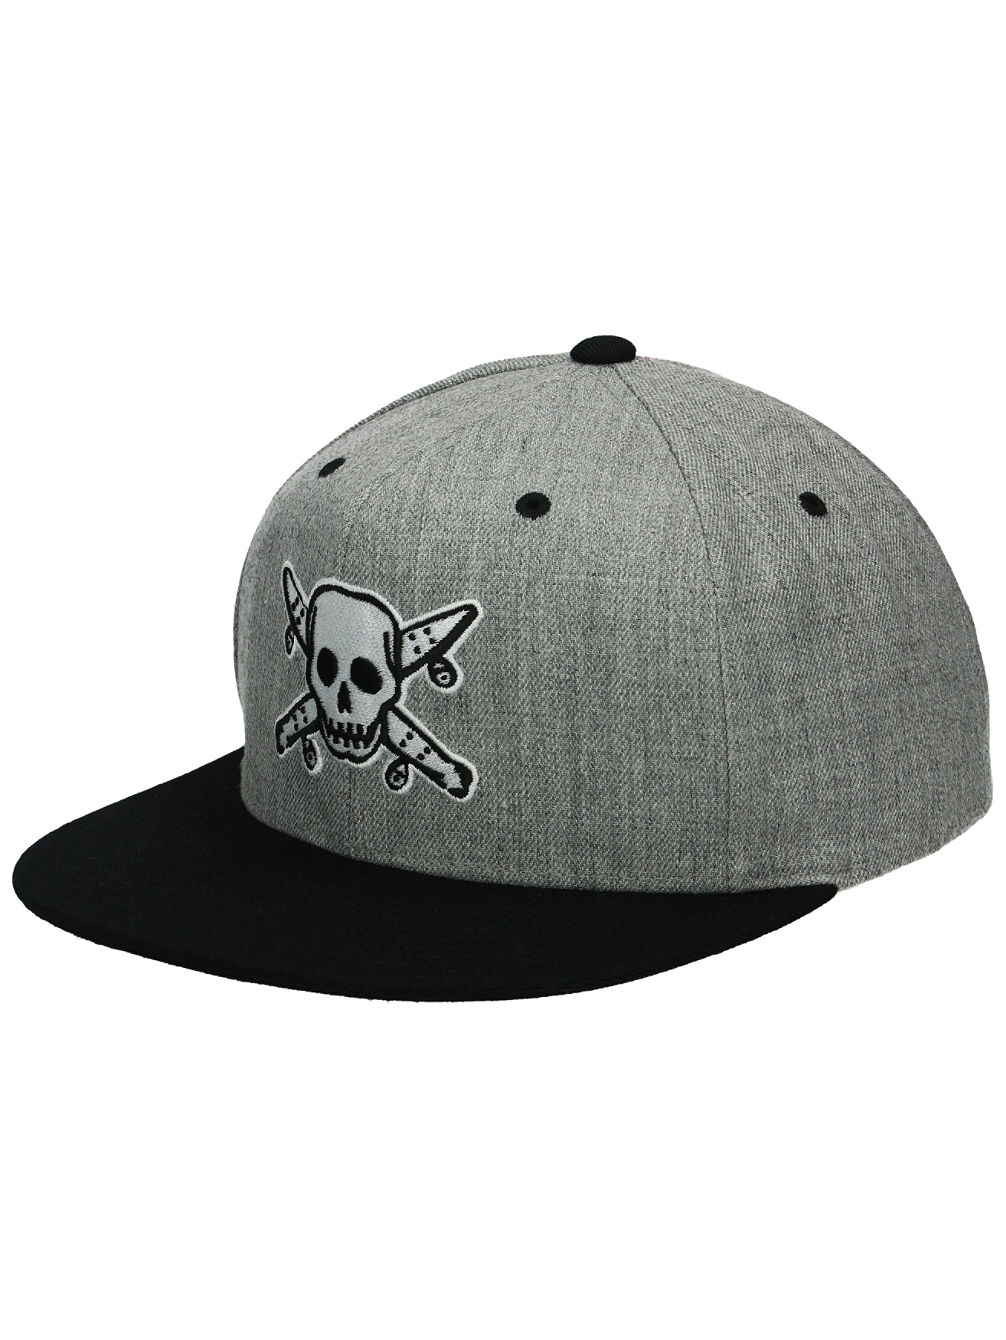 fourstar-street-pirate-snapback-cap